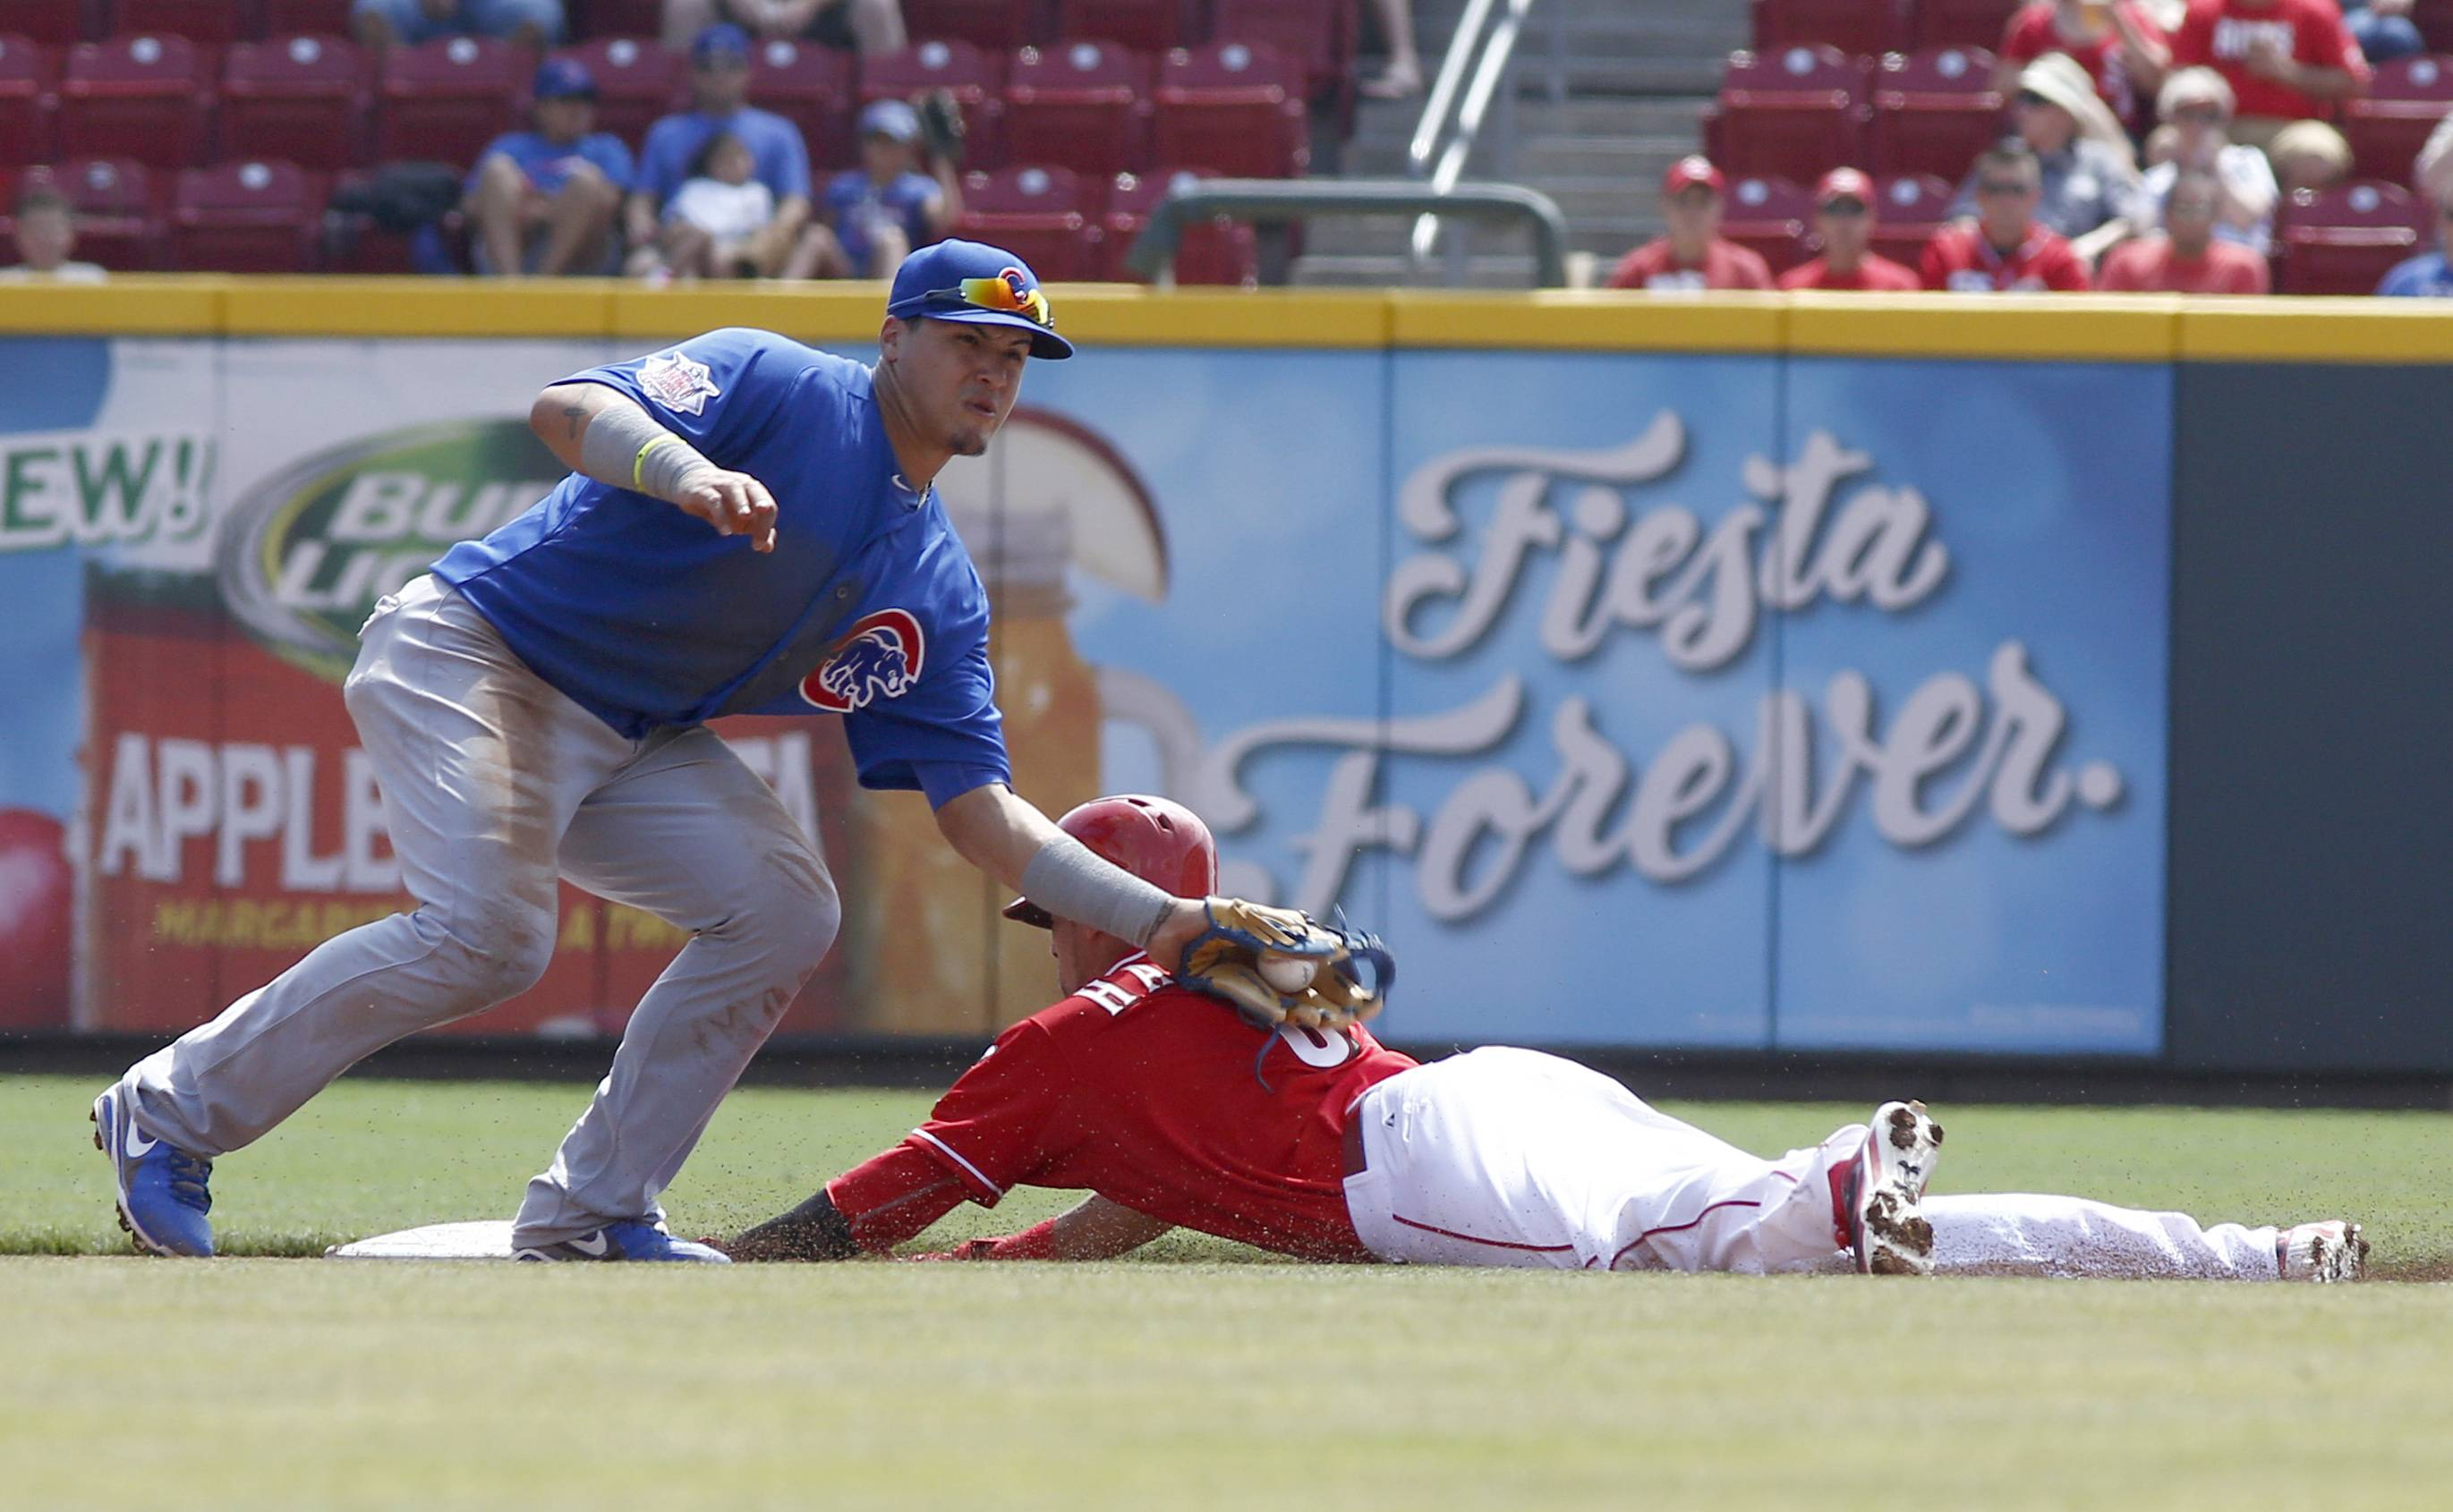 Cincinnati Reds' Billy Hamilton, right, steals second base under Chicago Cubs second baseman Javier Baez, left, in the first inning of a baseball game, Thursday, Aug. 28, 2014, in Cincinnati.